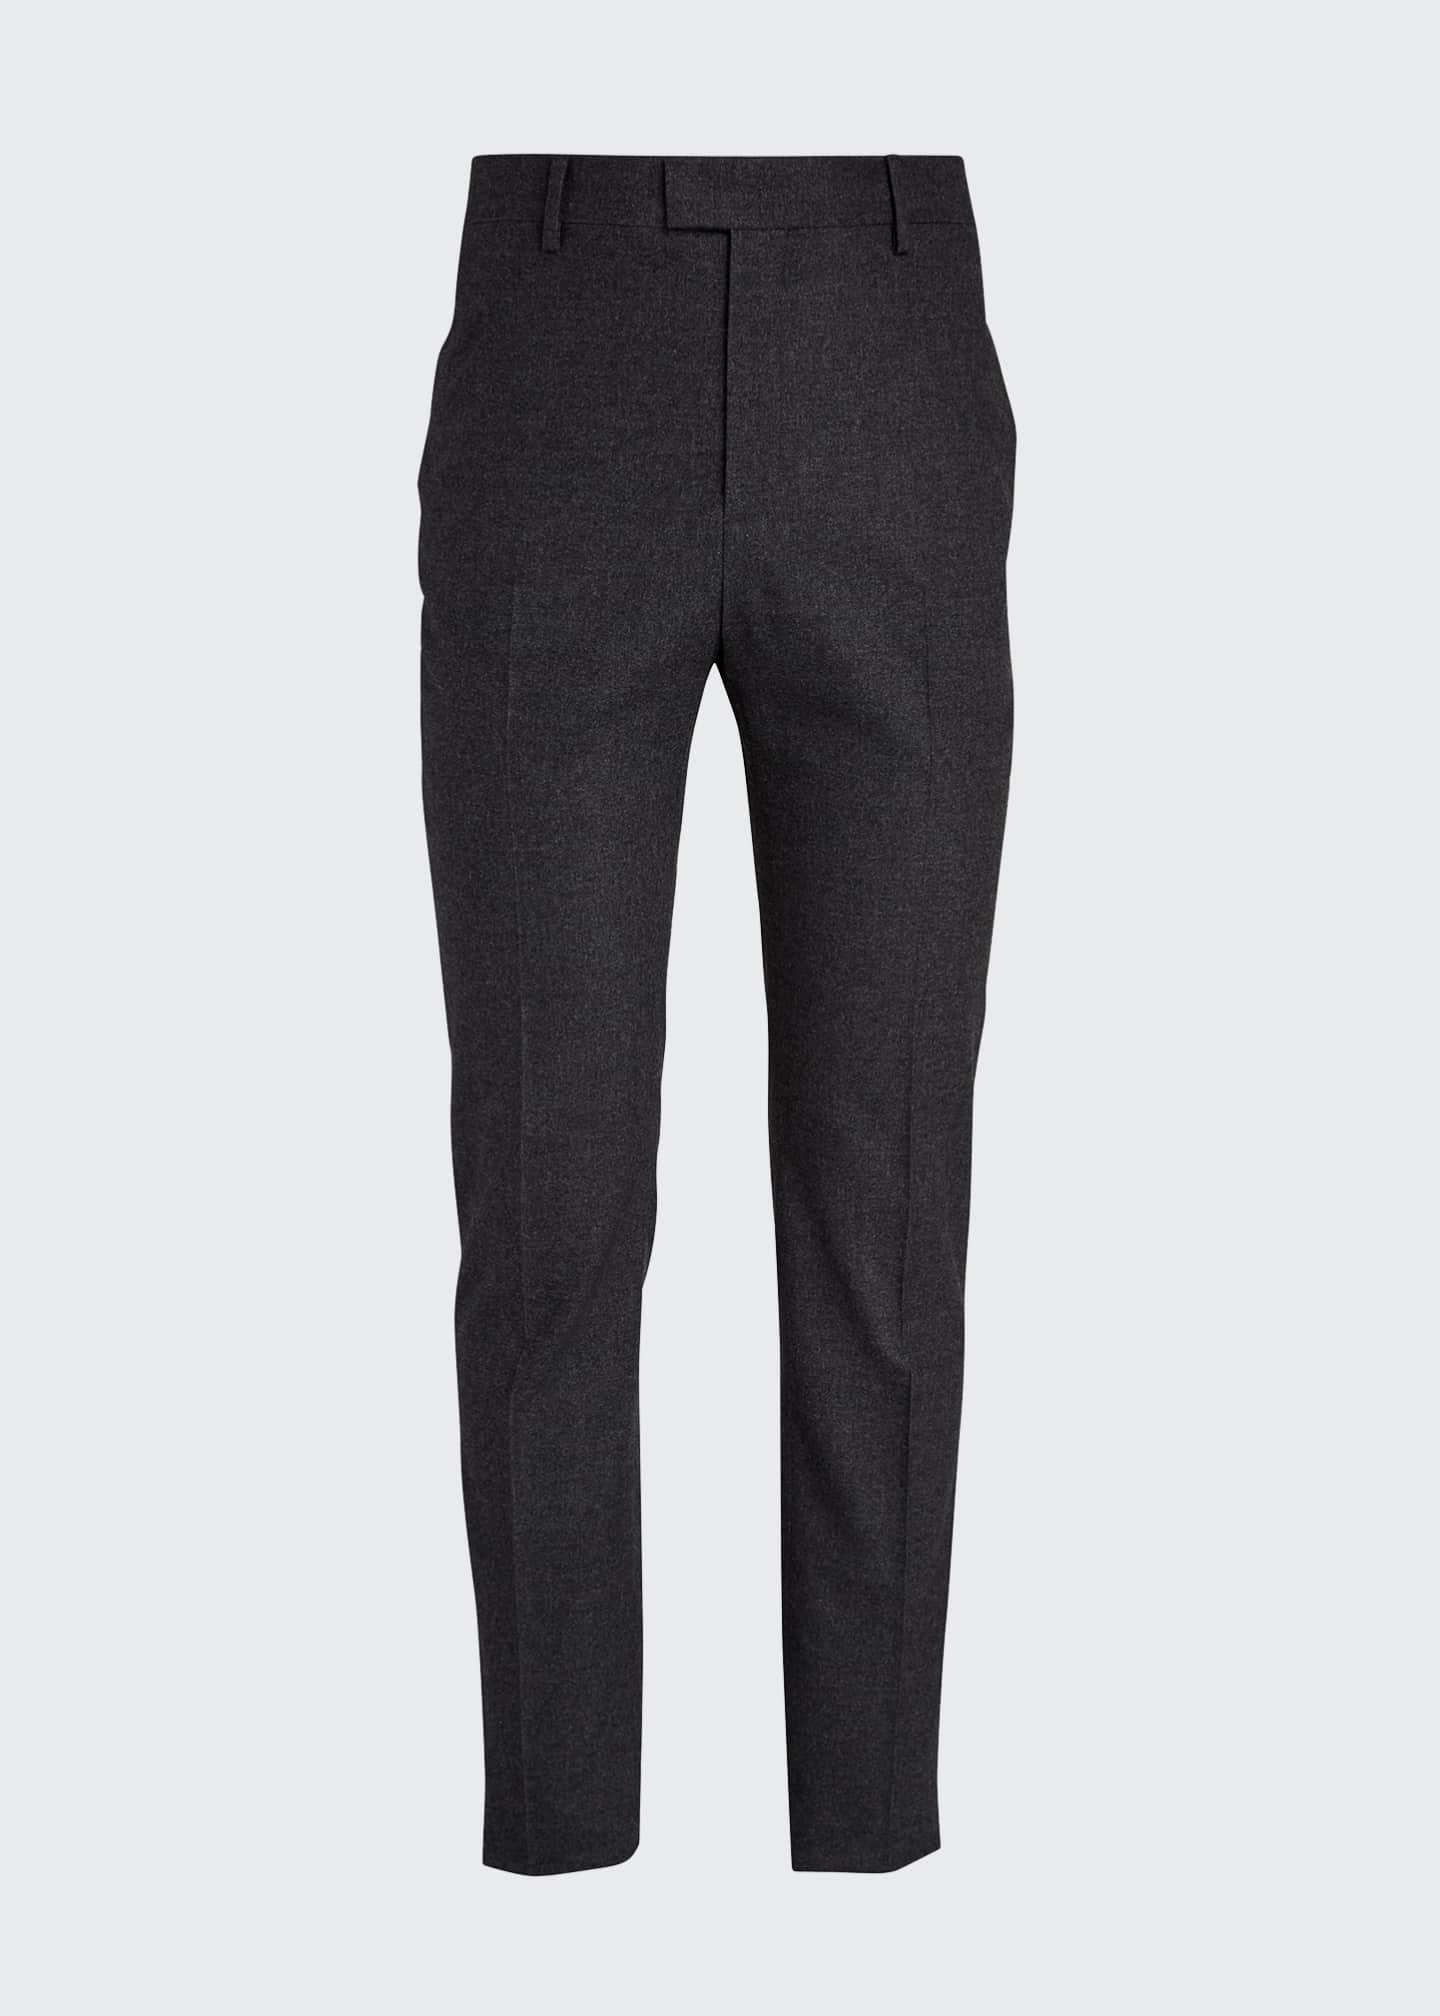 Image 5 of 5: Men's Classic Cashmere-Blend Straight-Leg Pants